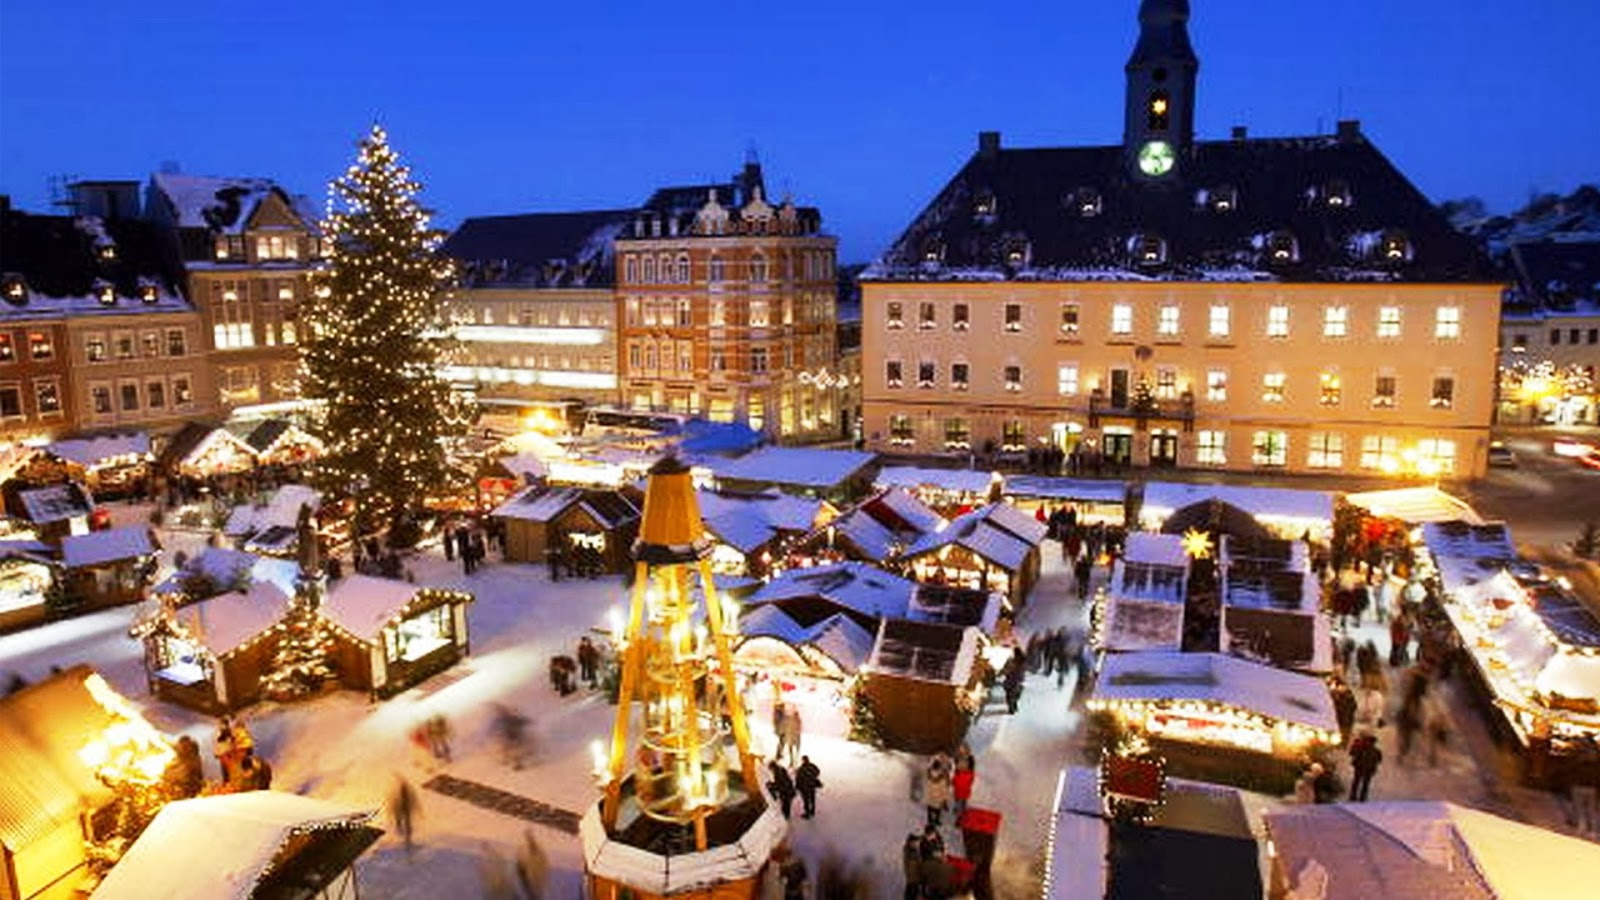 Christmas In Europe Wallpaper.Christmas Markets Europe My Favourite Tourist Places